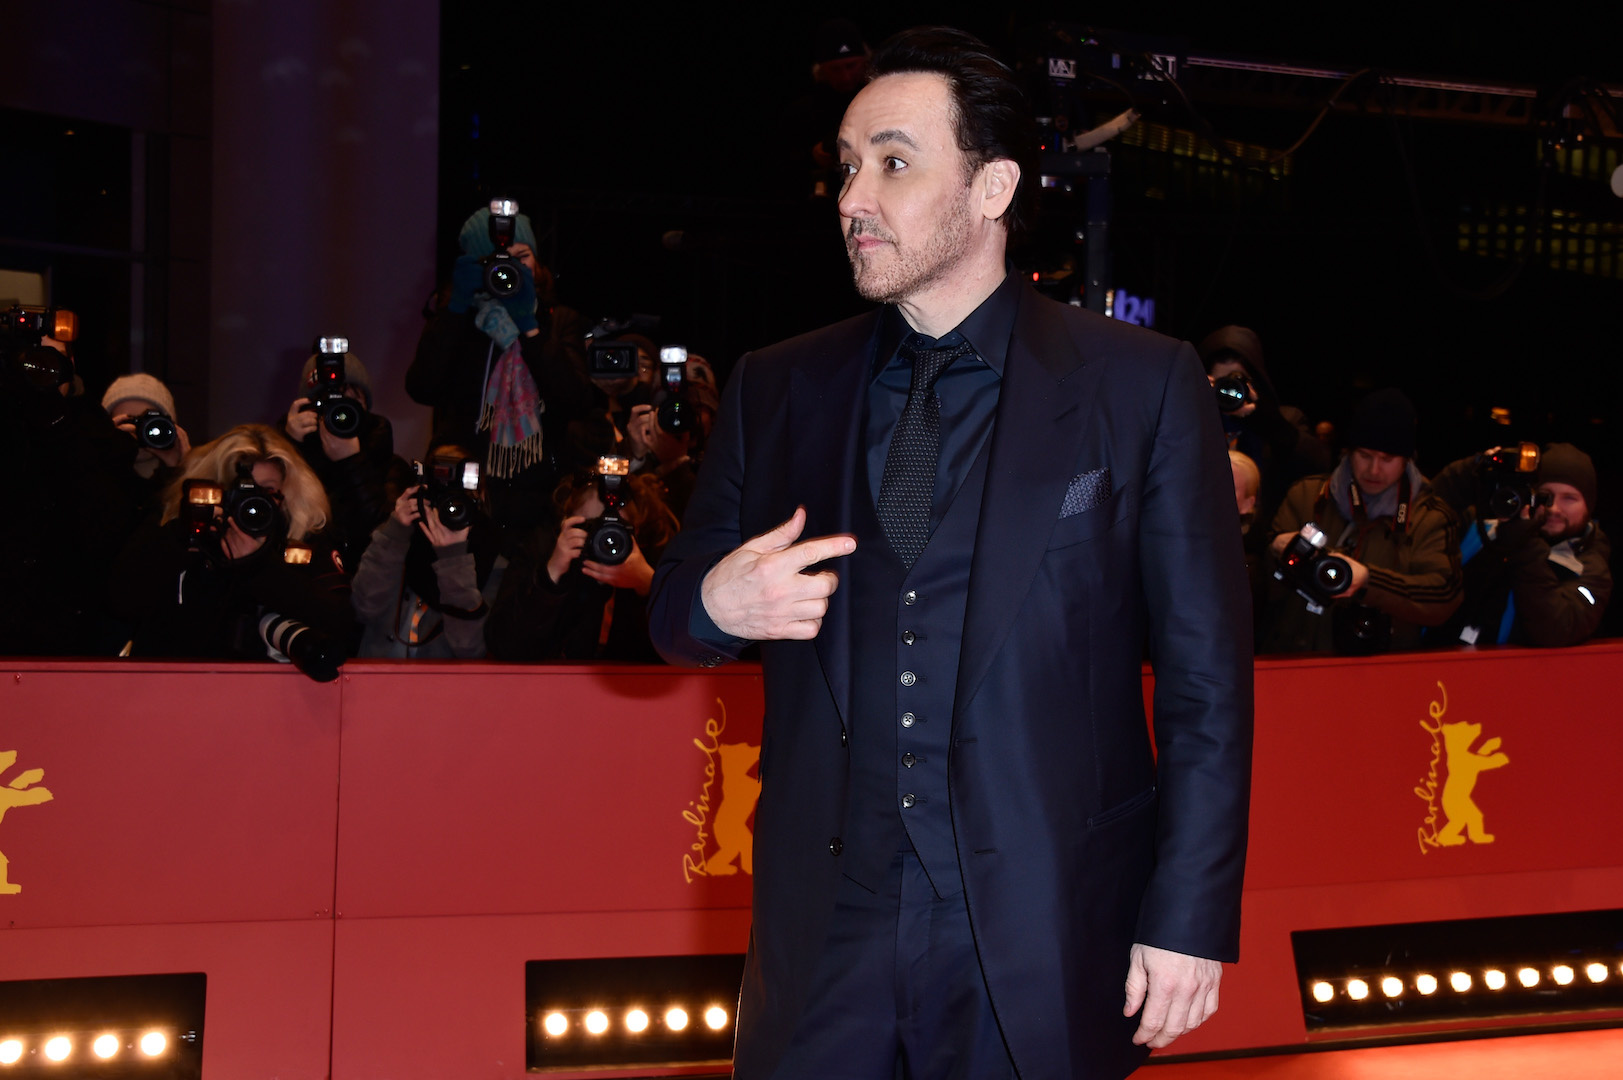 Actor John Cusack retweets blatantly anti-Semitic post—then botches the apology with confusing follow-up tweets